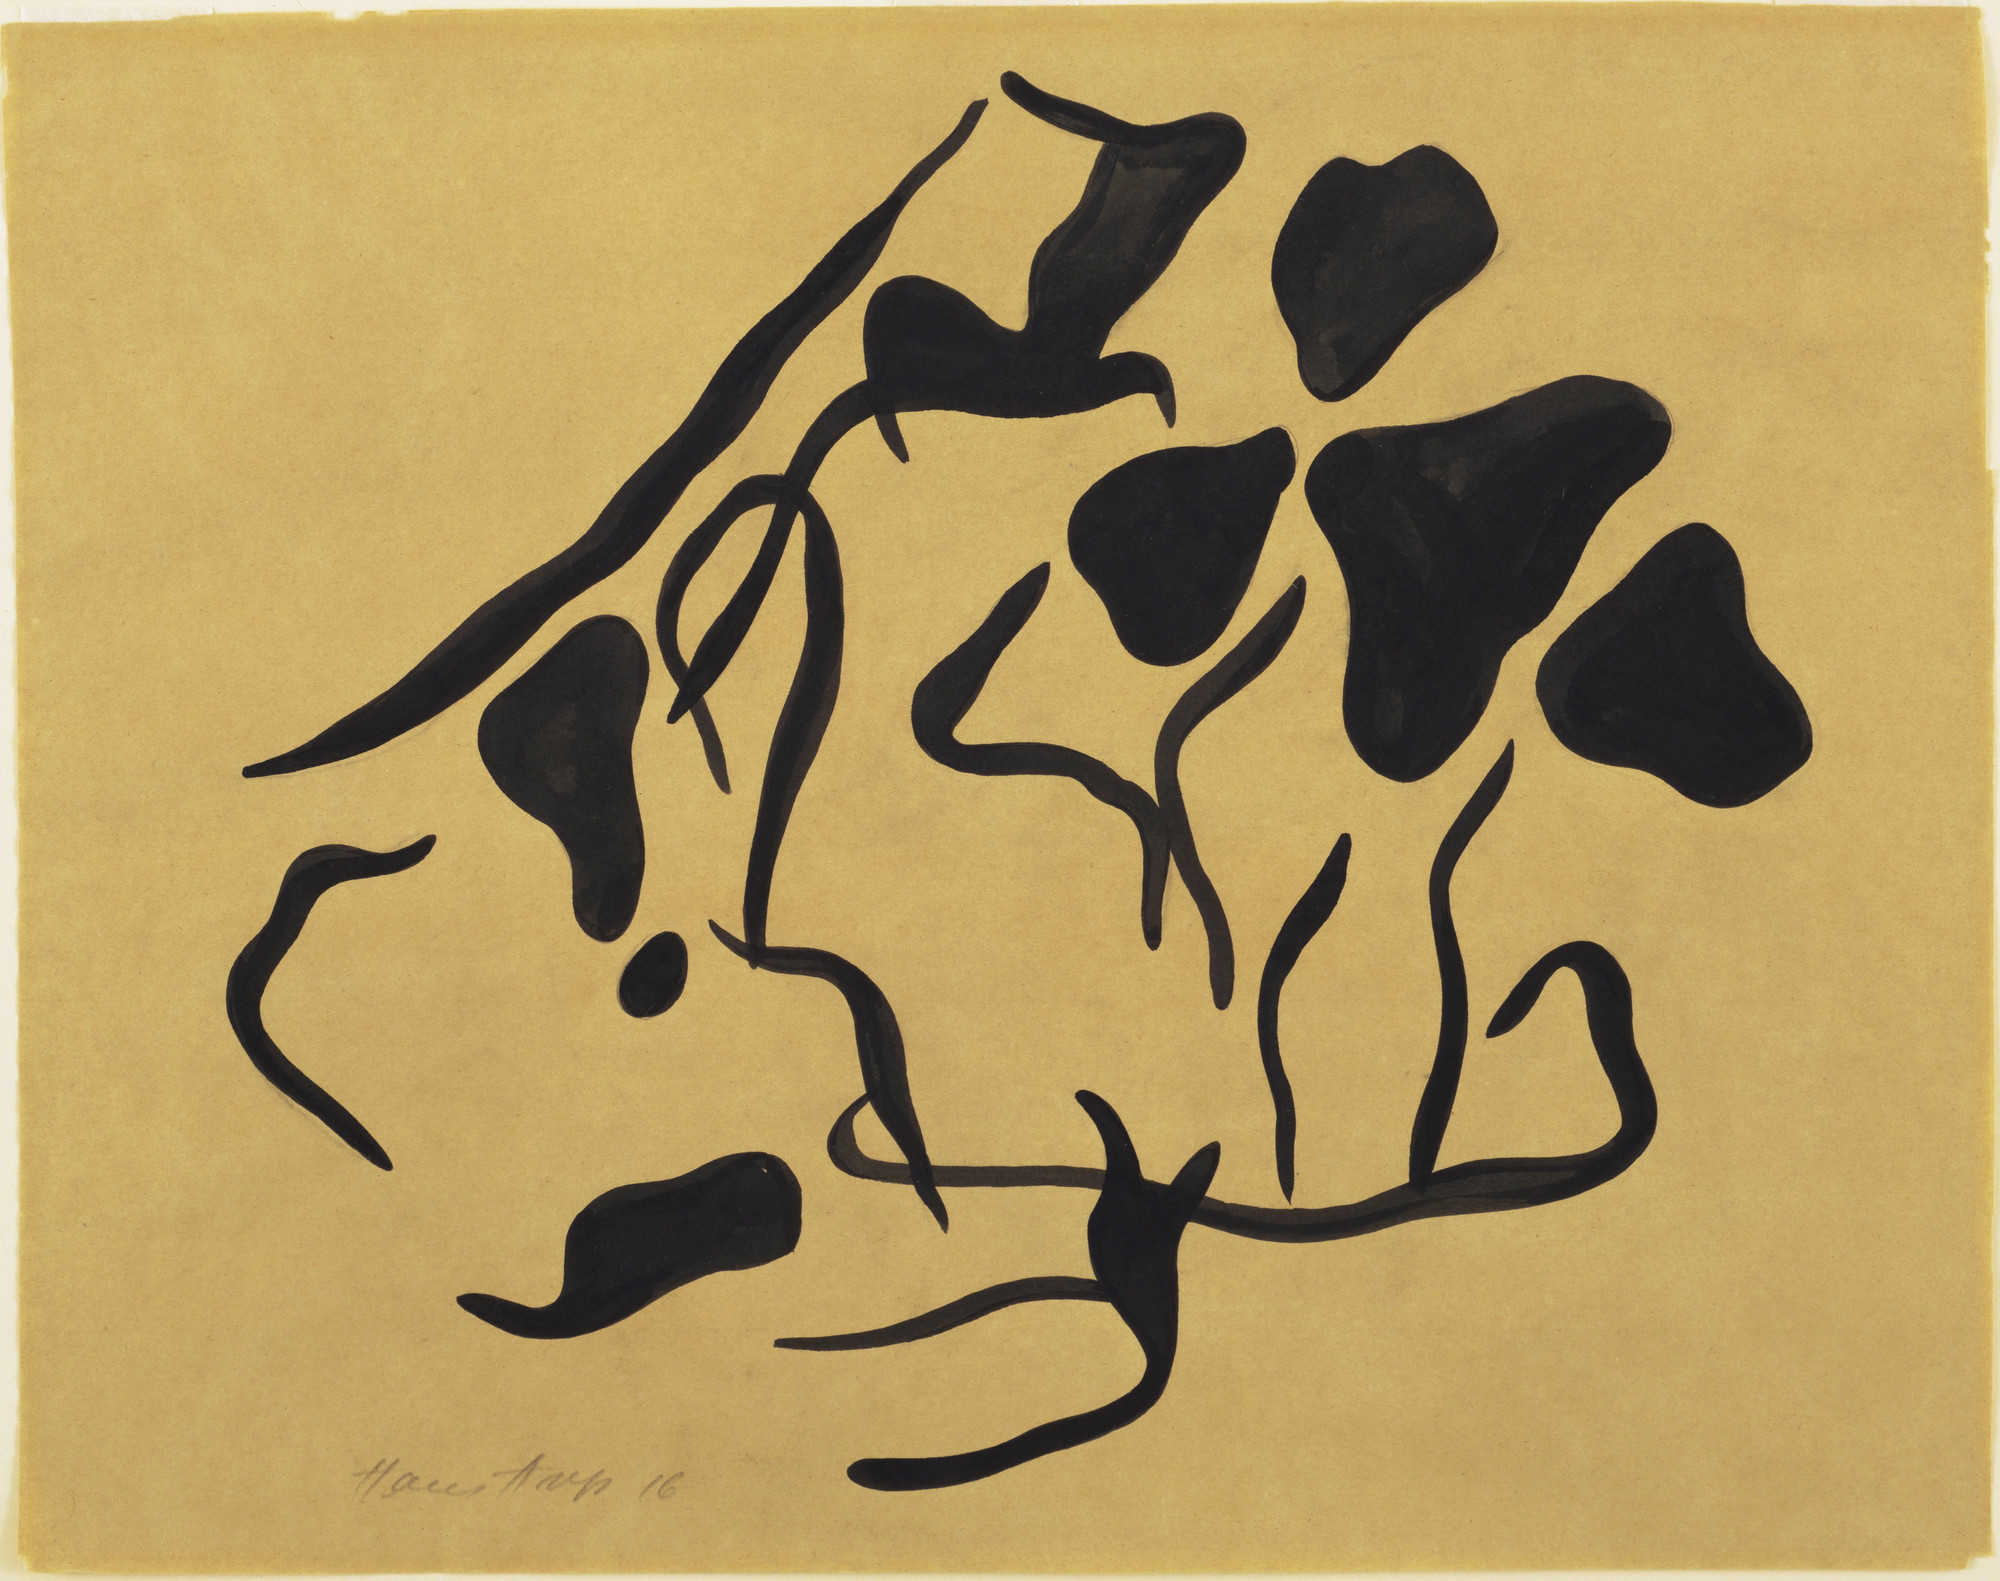 Jean (Hans) Arp. Untitled (Automatic Drawing). 1917–18, dated 1916